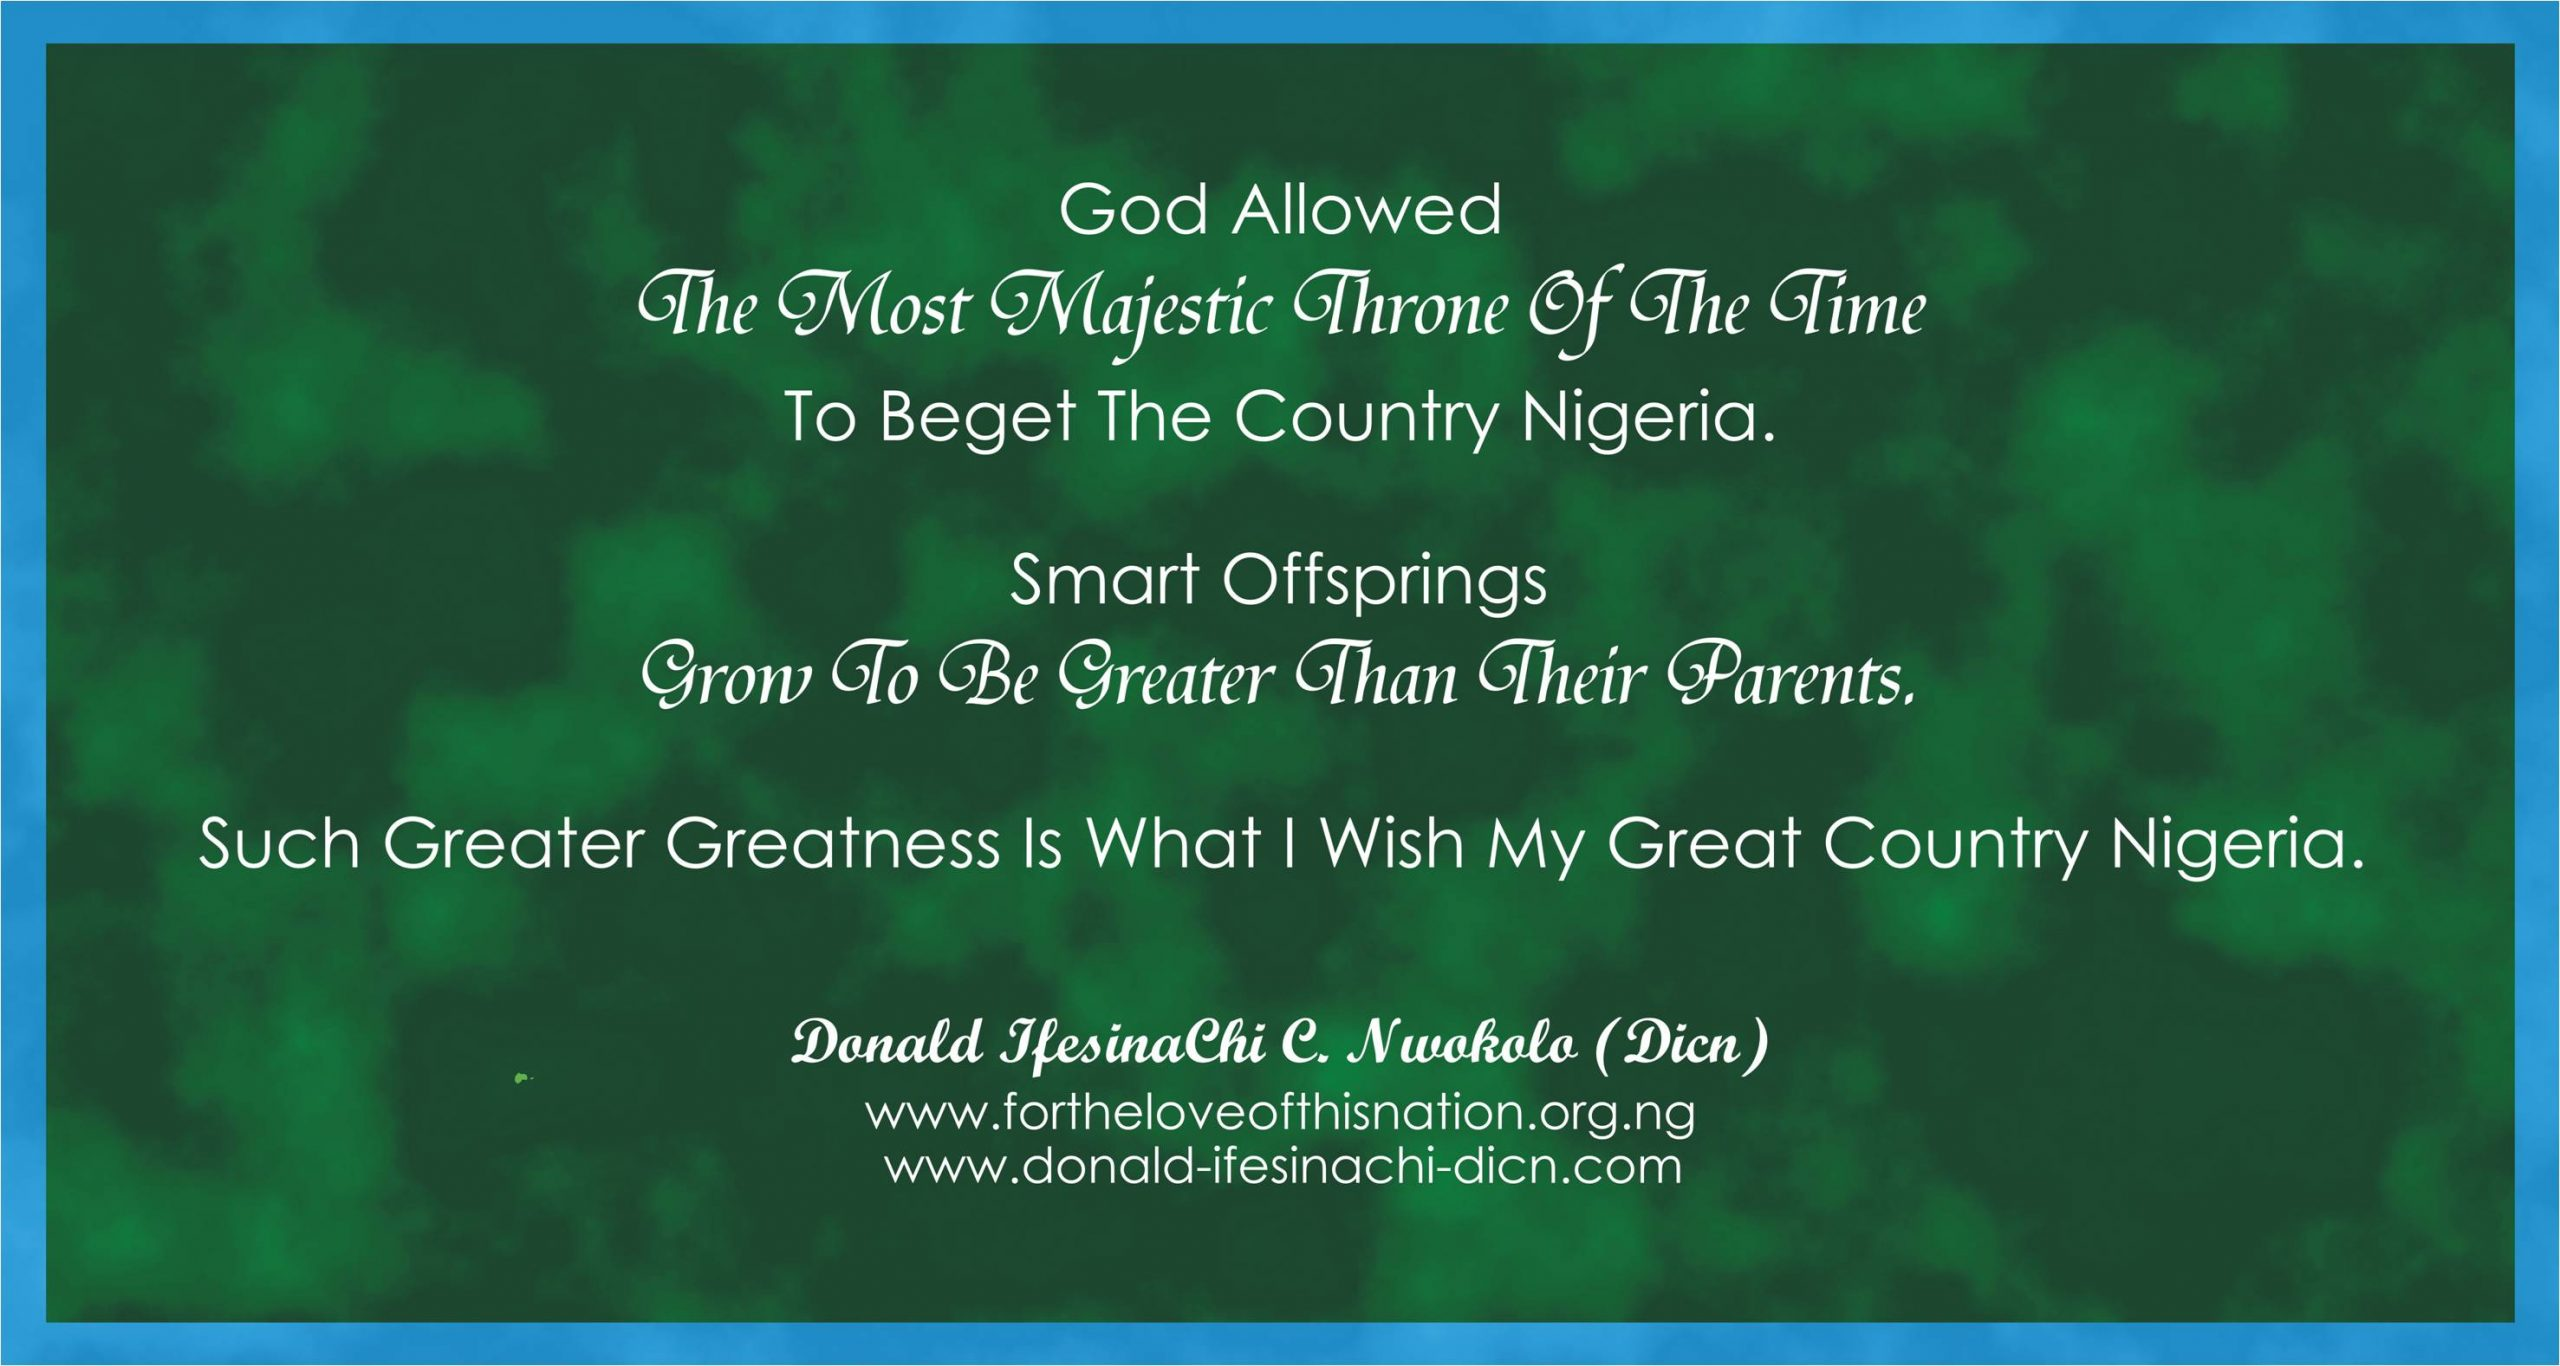 Inspirational Word For Fellow Nigerians From Donald IfesinaChi Dicn